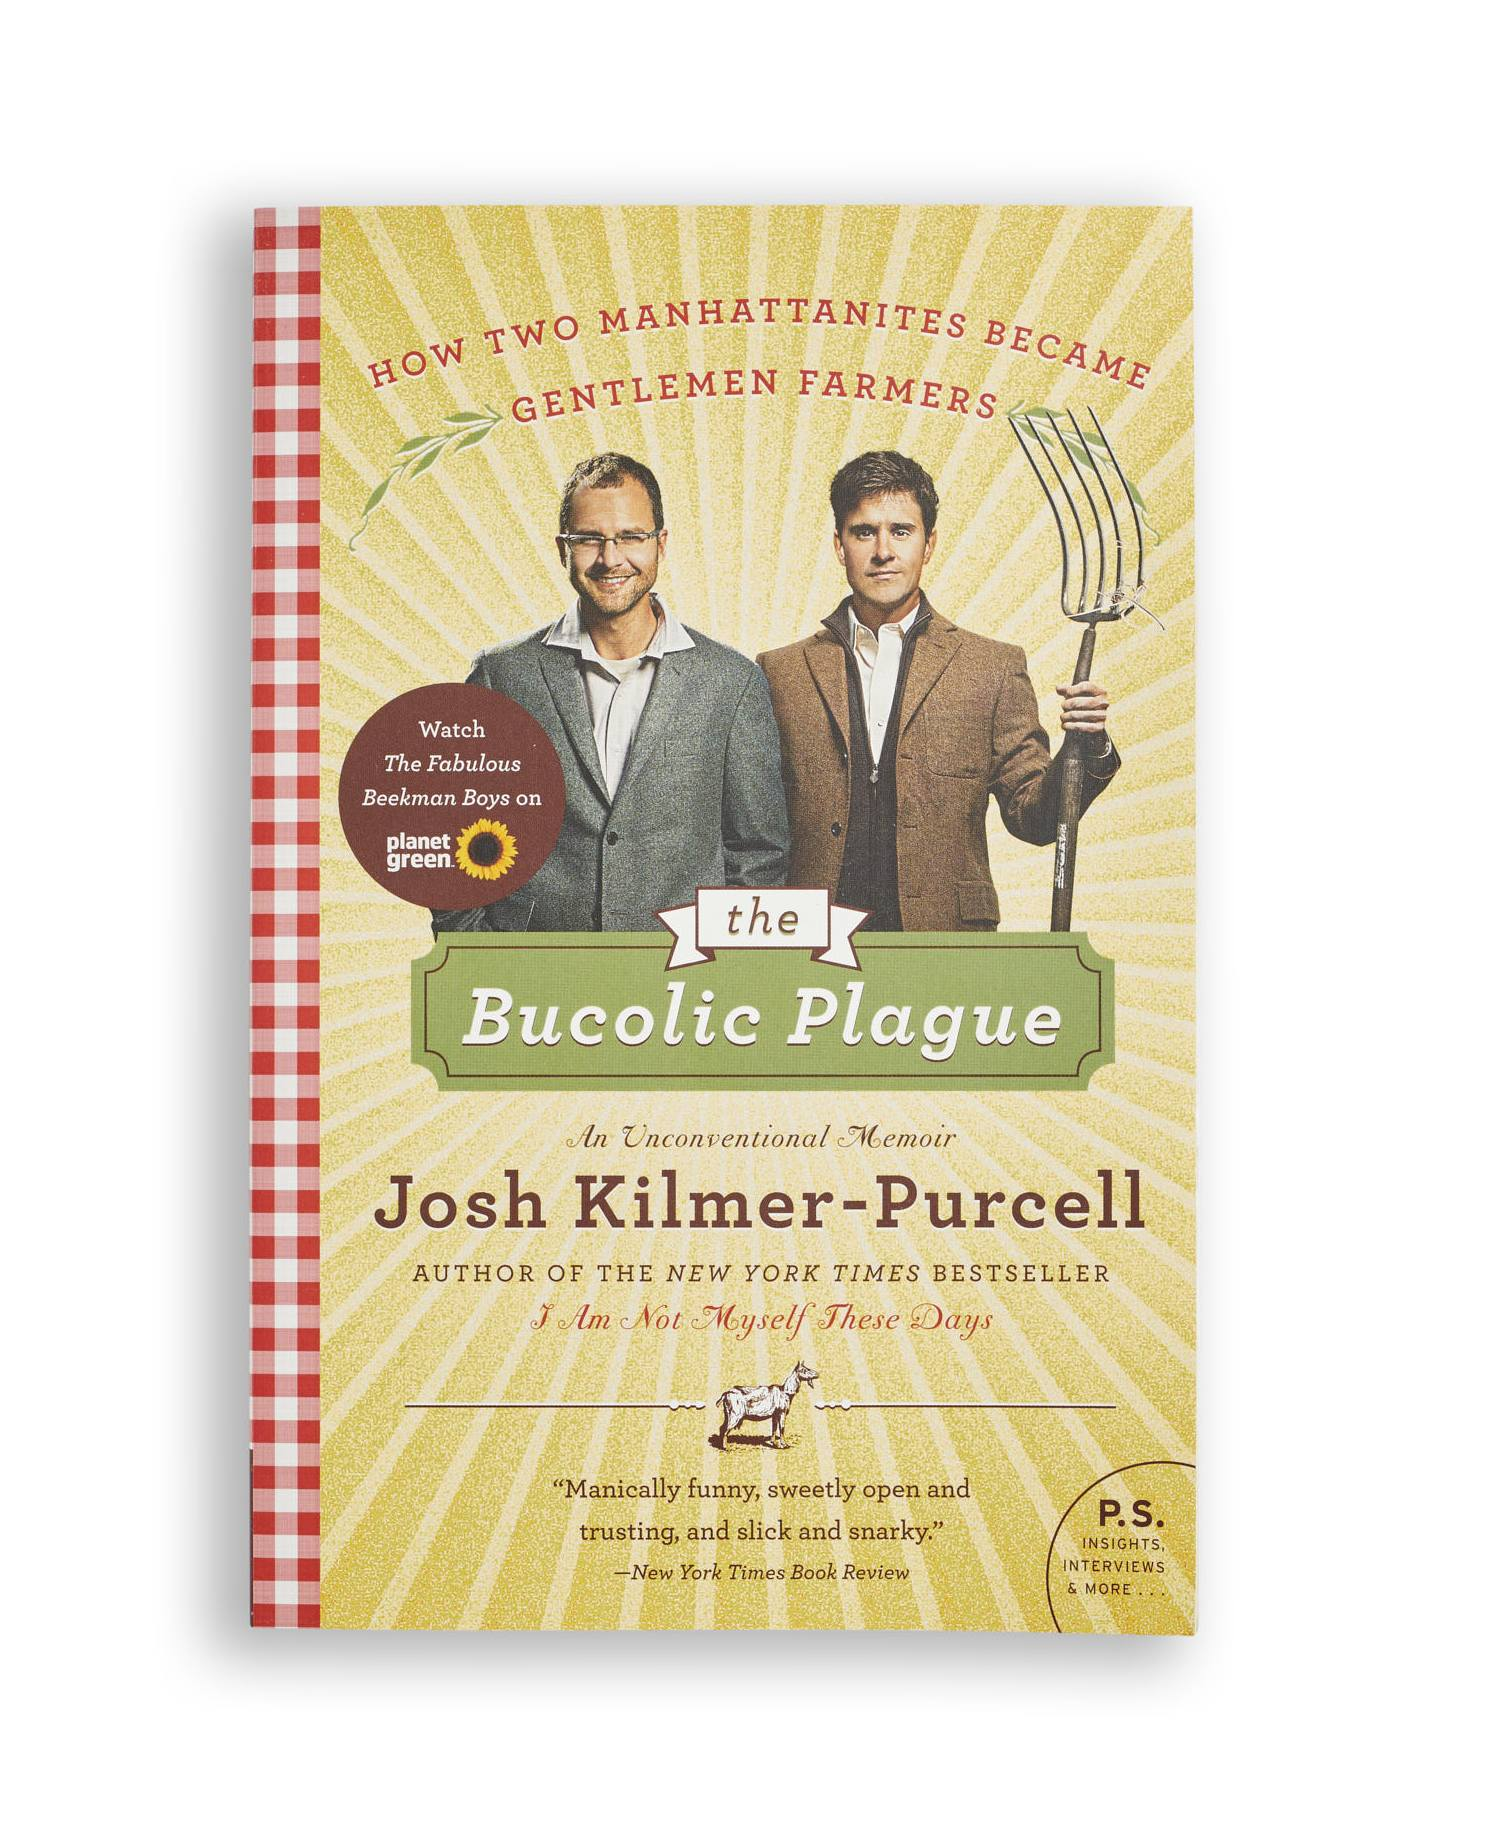 The Bucolic Plague book by josh kilmer-purcell